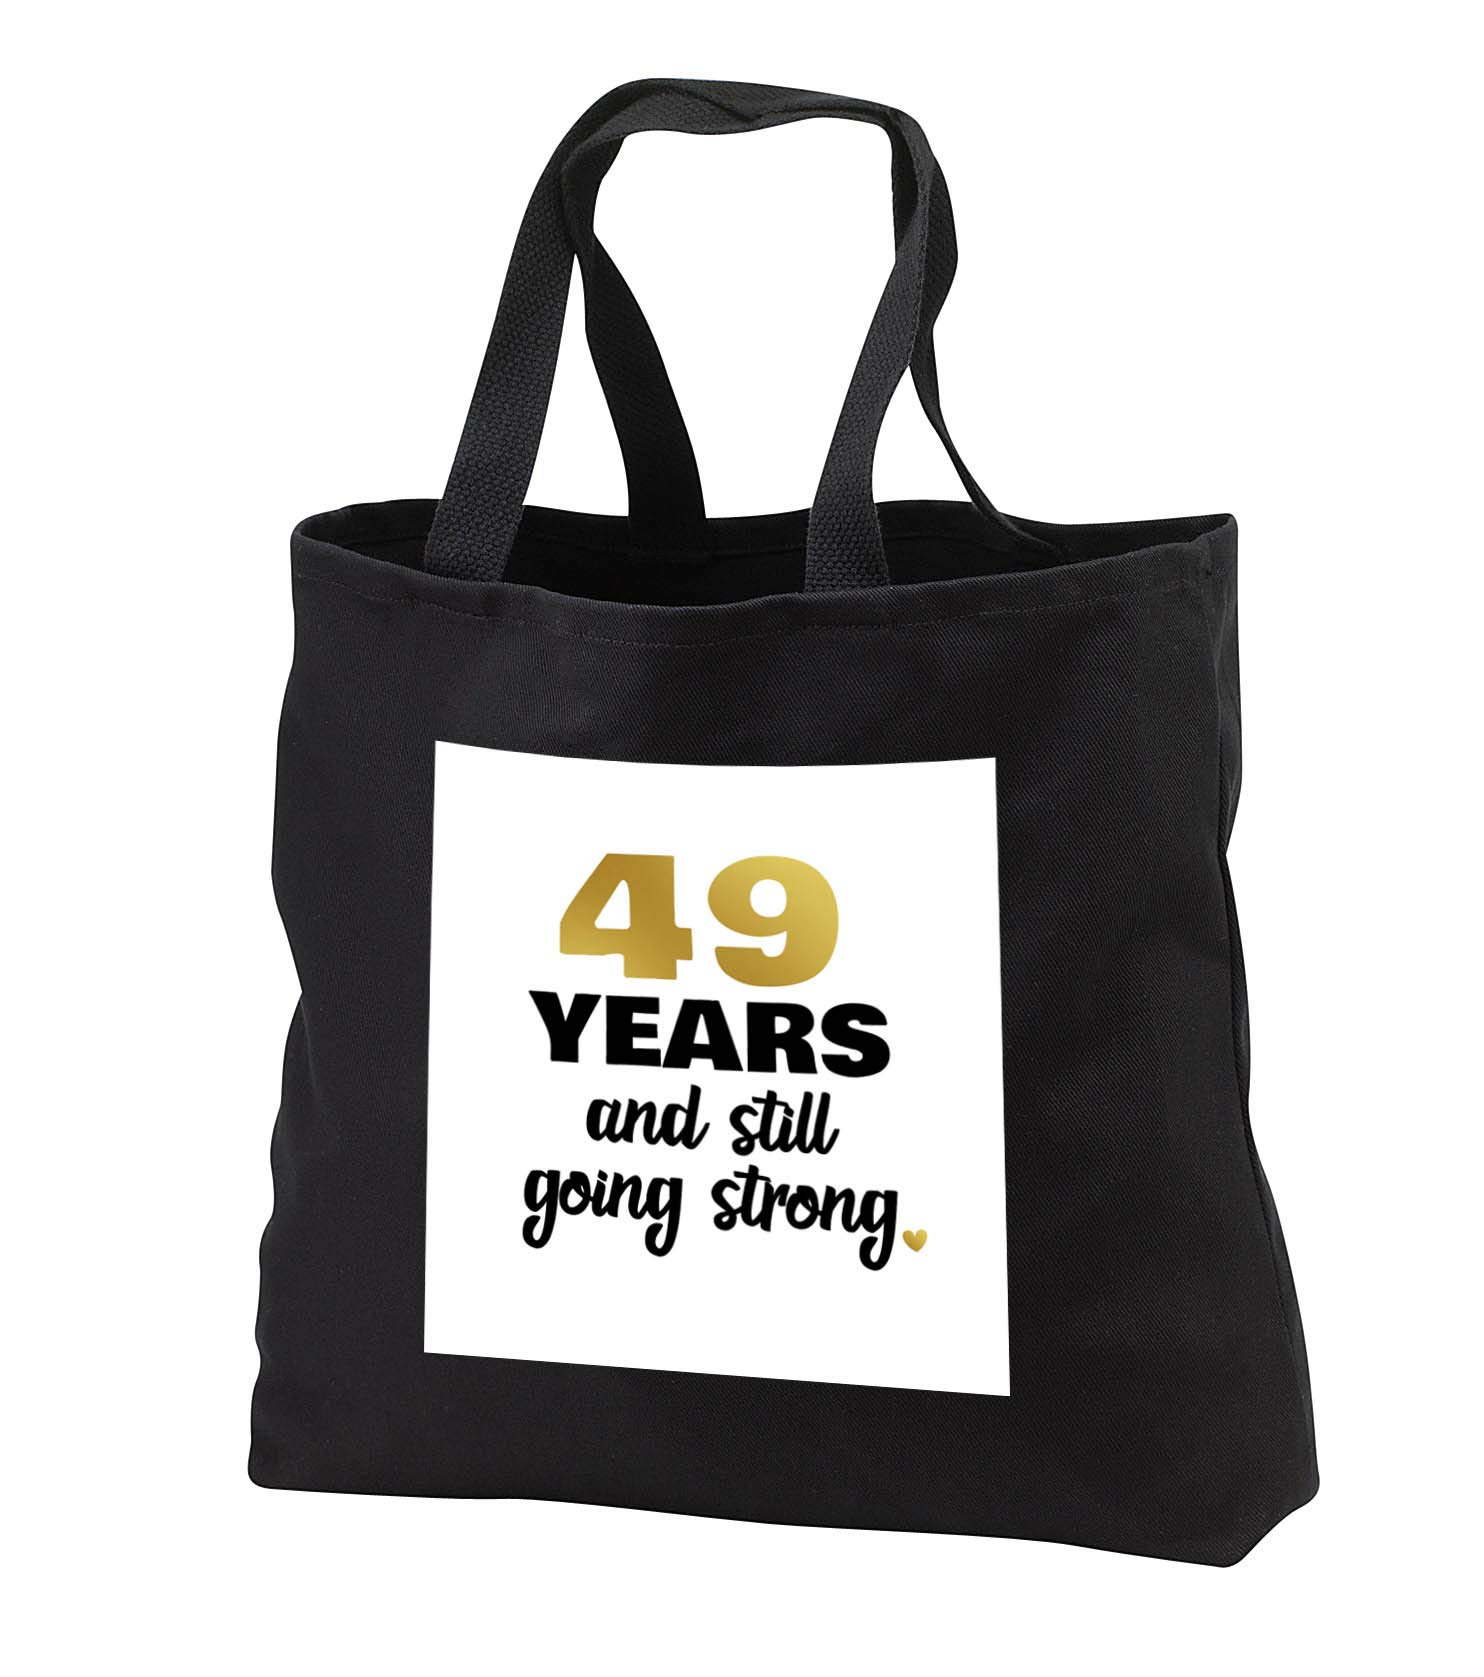 Janna Salak Designs Anniversary - 49 Year Anniversary Still Going Strong 49th Wedding Anniversary Gift - Tote Bags - Black Tote Bag 14w x 14h x 3d (tb_289683_1)